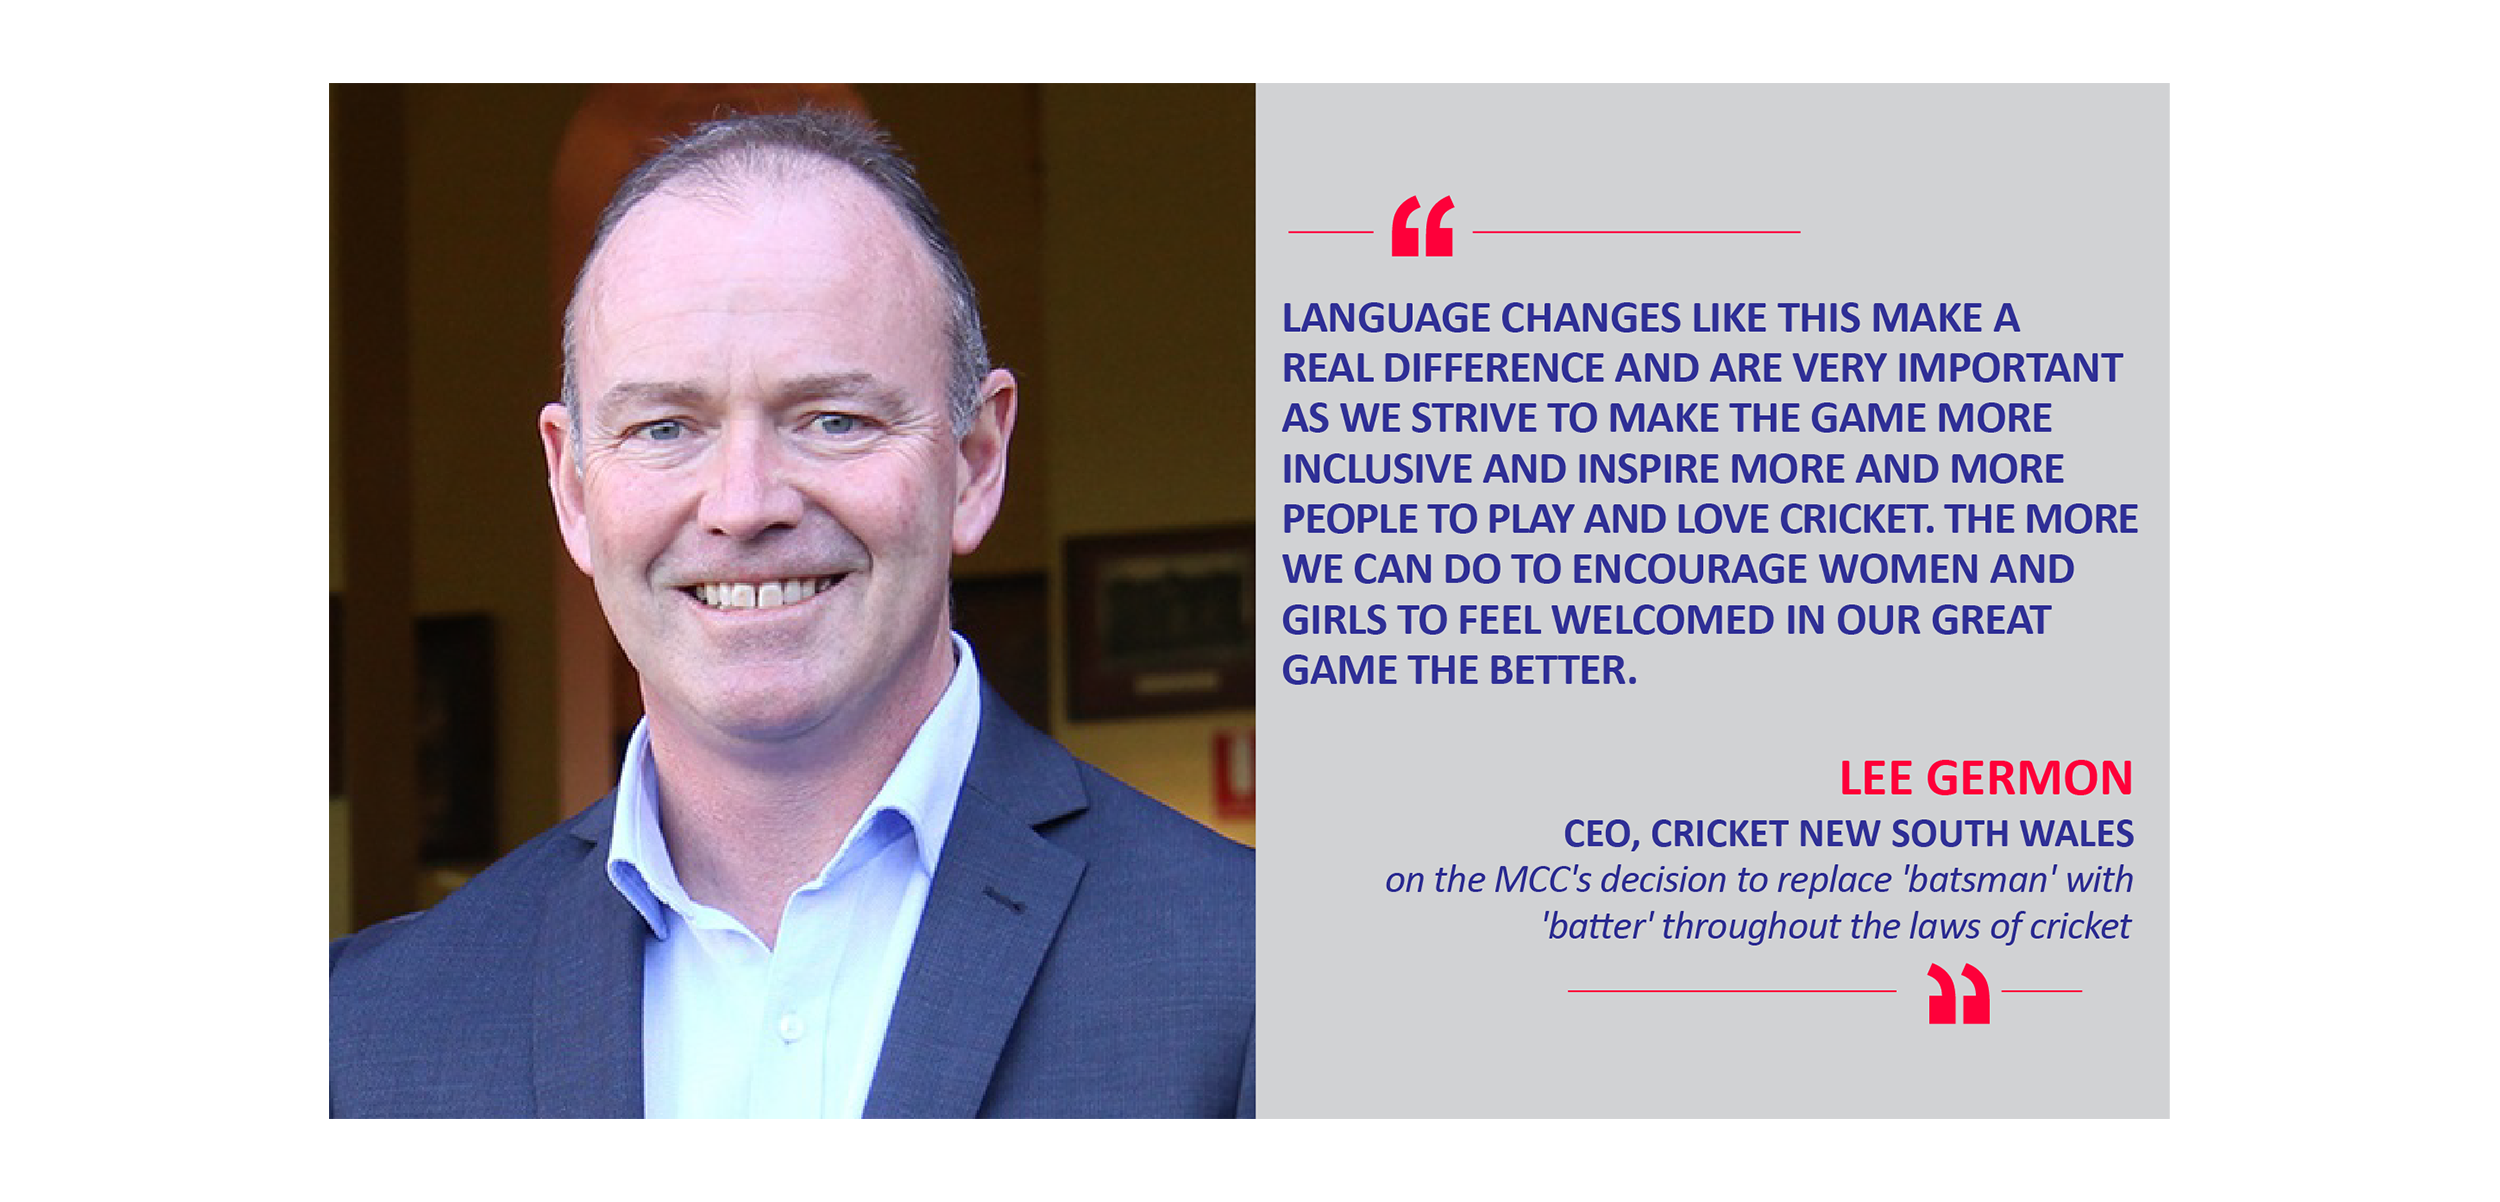 Lee Germon, CEO, Cricket New South Wales on the MCC's decision to replace 'batsman' with 'batter' throughout the laws of cricket